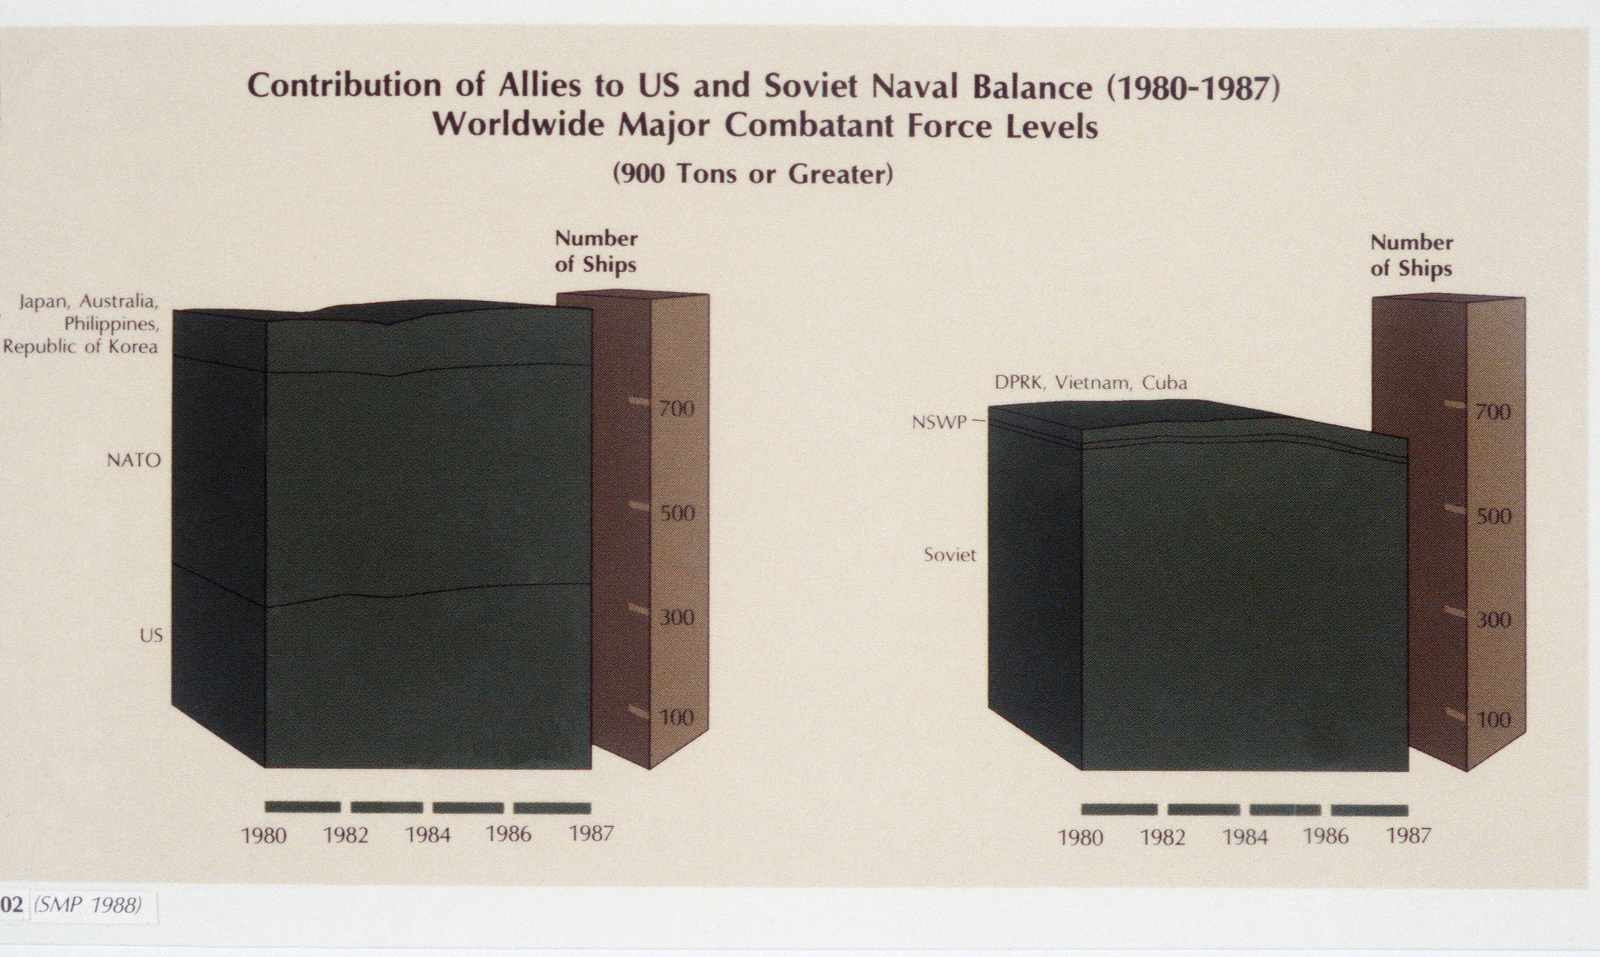 A chart depicting the contribution of allied nations to the US and Soviet naval balance on the worldwide major combatant force level during the period 1980-1987